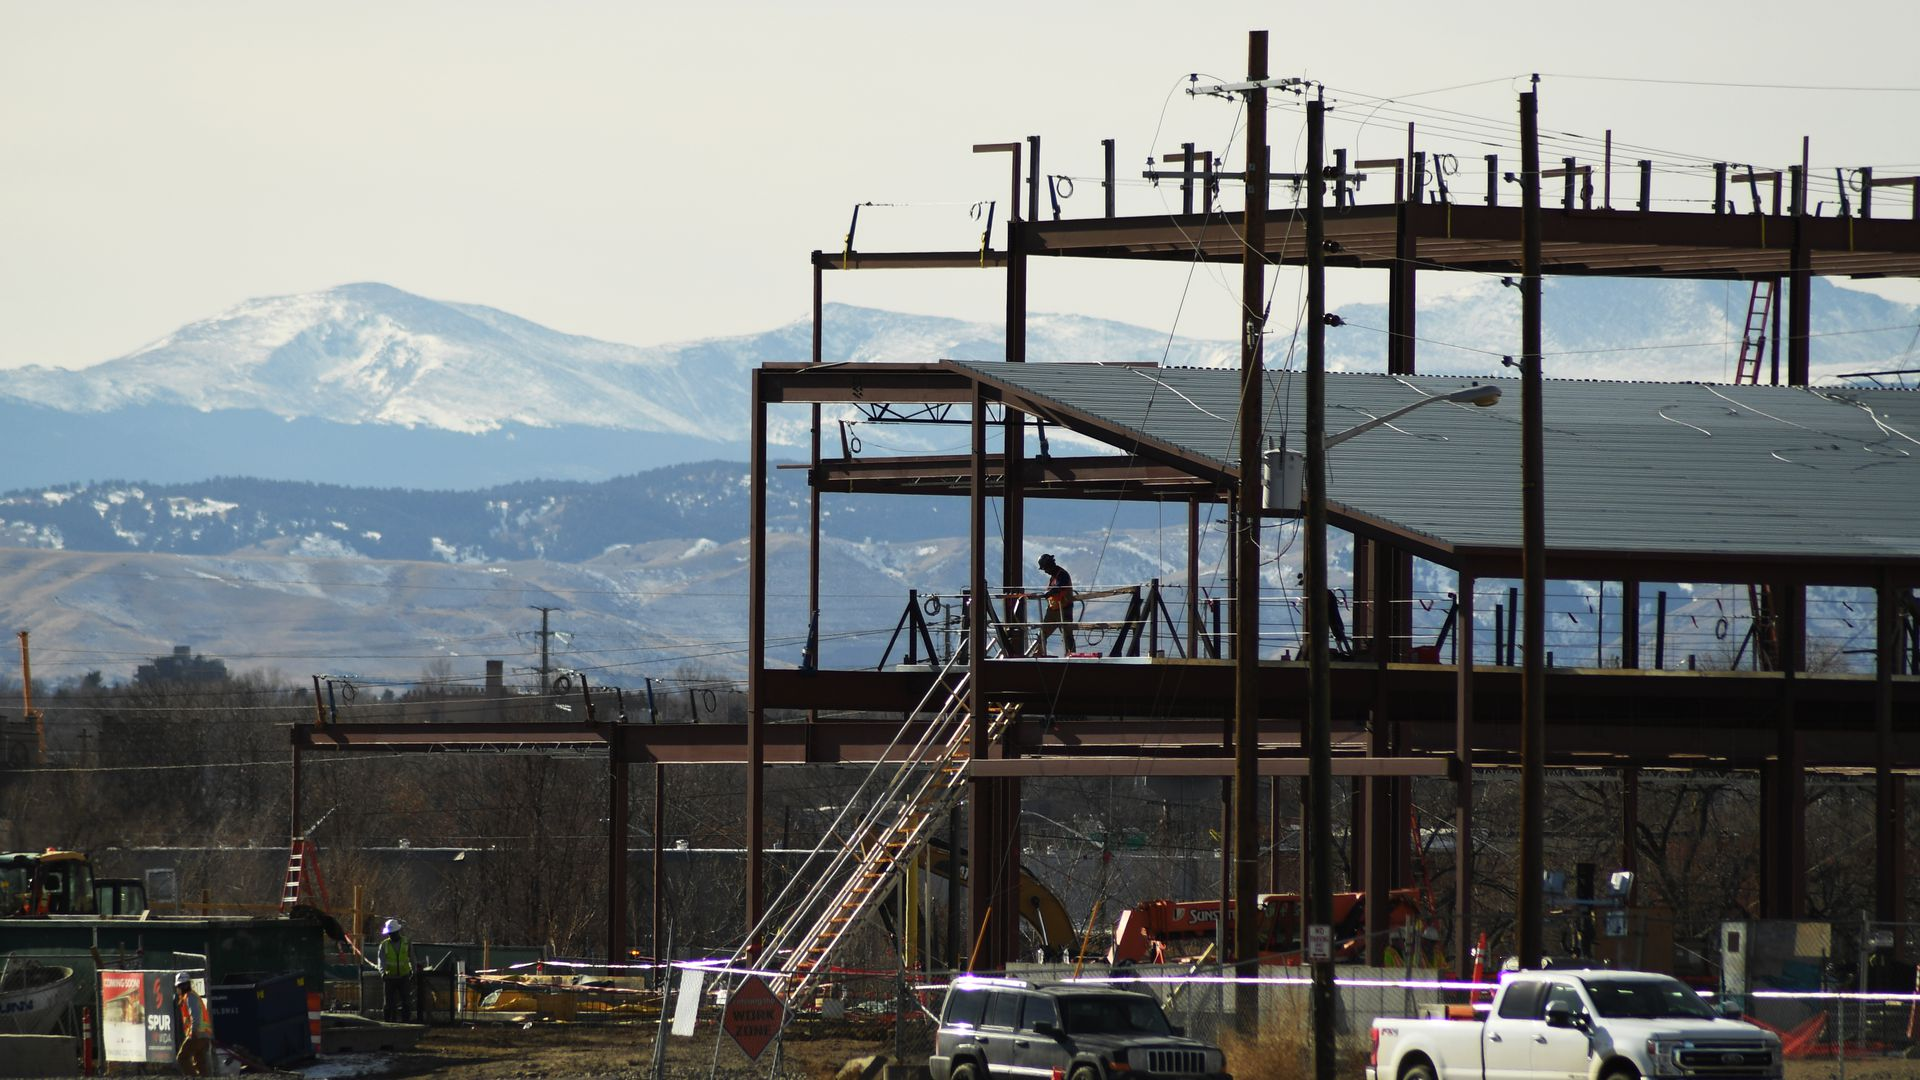 The construction at the National Western Center in 2021. Photo: Hyoung Chang/The Denver Post via Getty Images